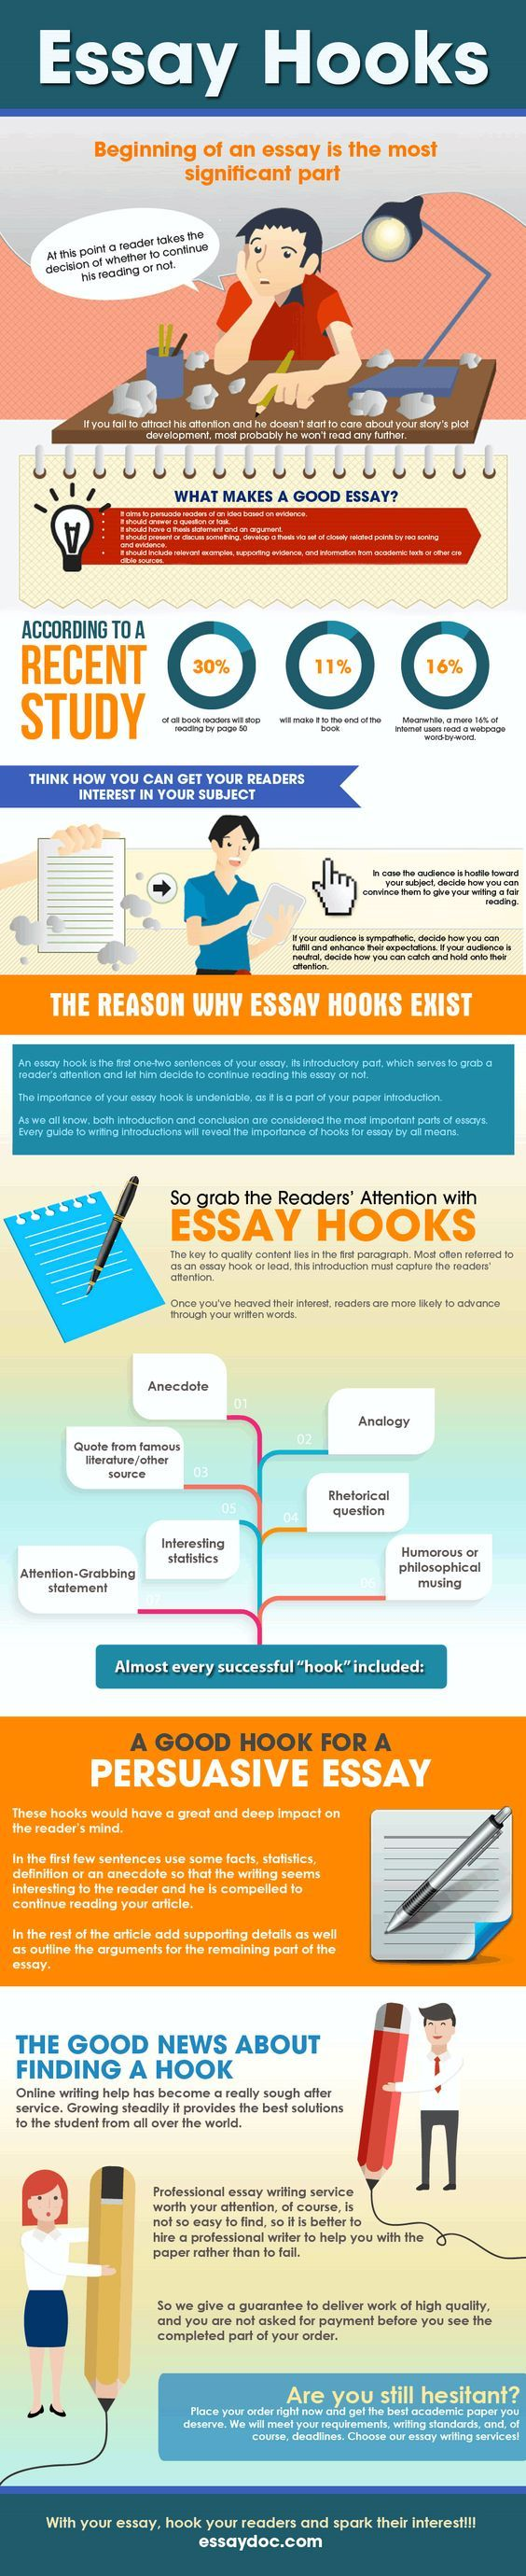 best ideas about nursing research research tips on essay writing editing and proofreading services editberry com